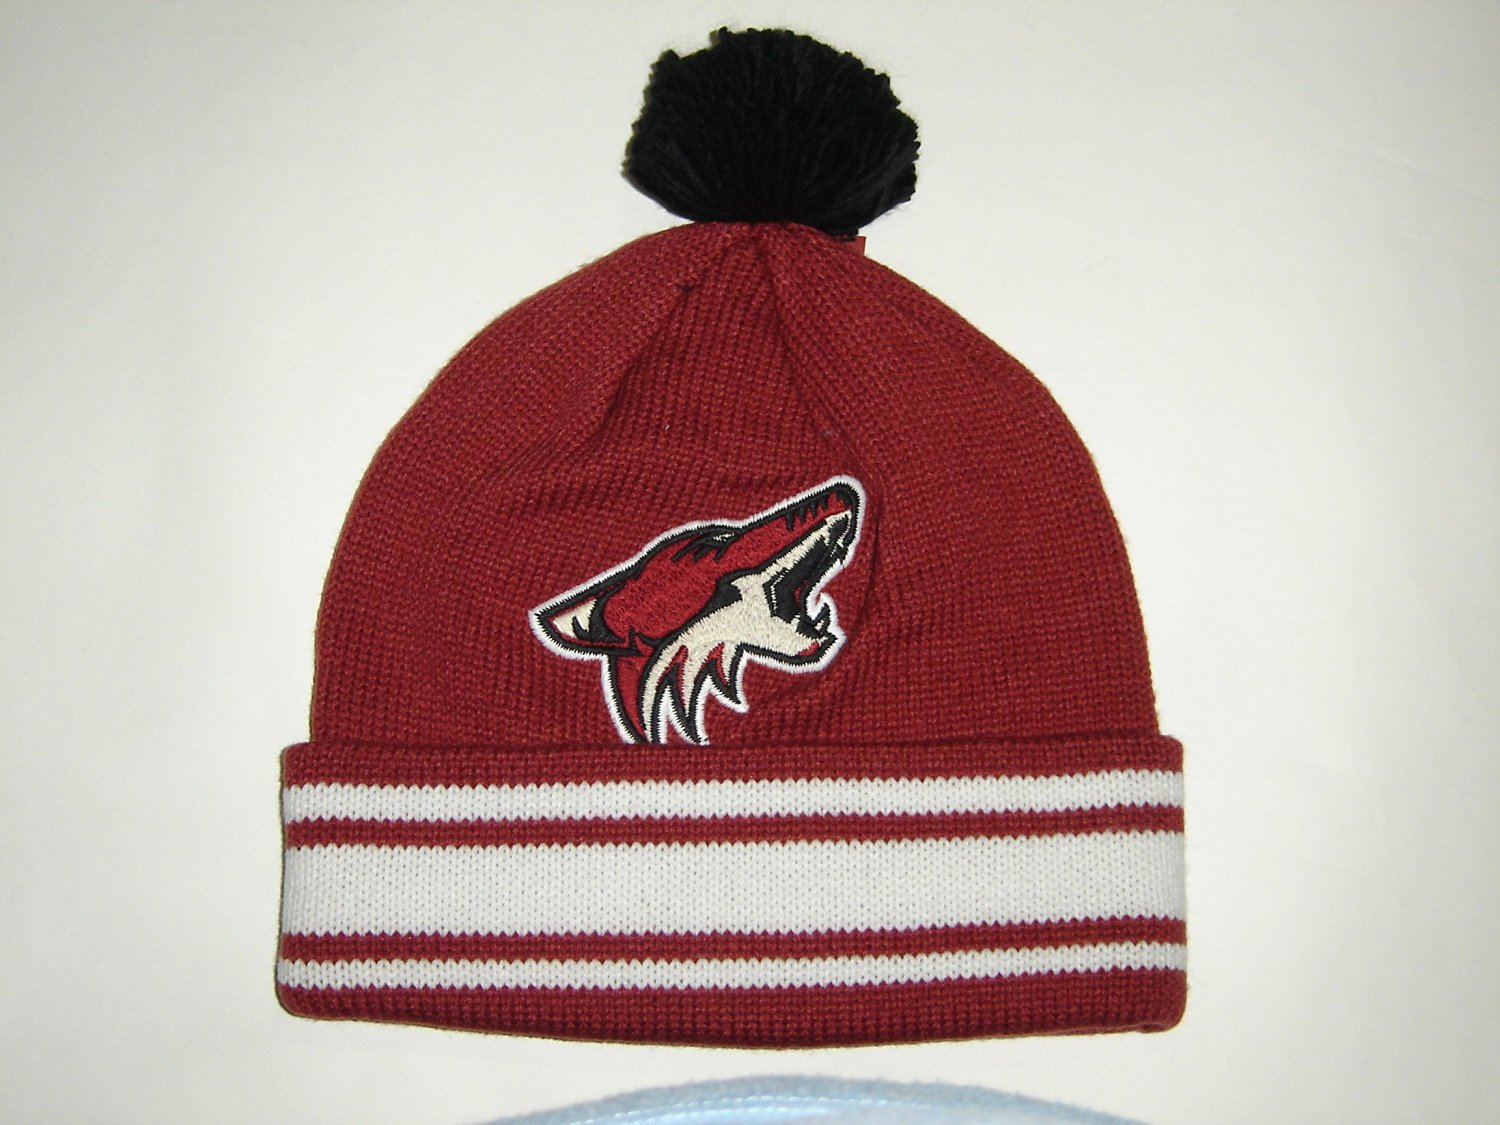 the best attitude c8ef9 1d8f7 Get Quotations · Mitchell and Ness NHL Phoenix Coyotes Logo Beanie Cuffed  Knit Hat w  Pom